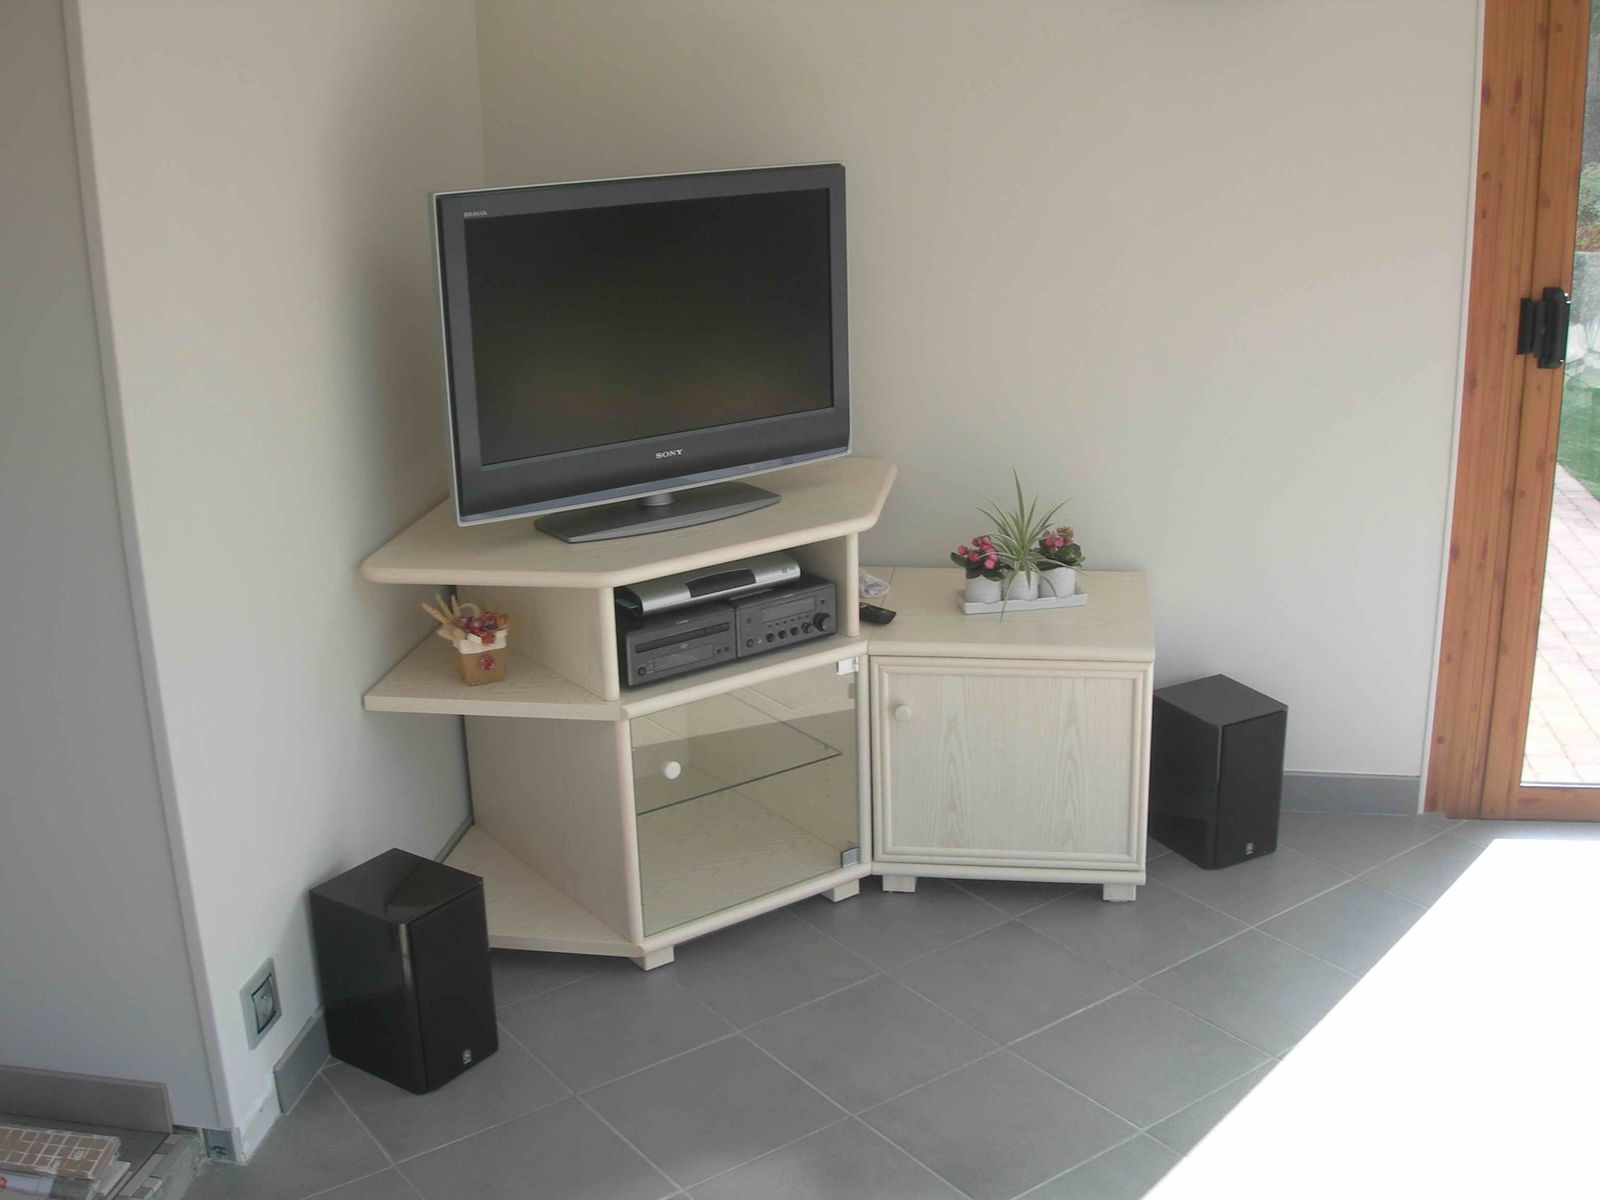 Album meubles tv exodia home design tables ceramique canapes salons tiss - Meuble tv d angle modulable ...